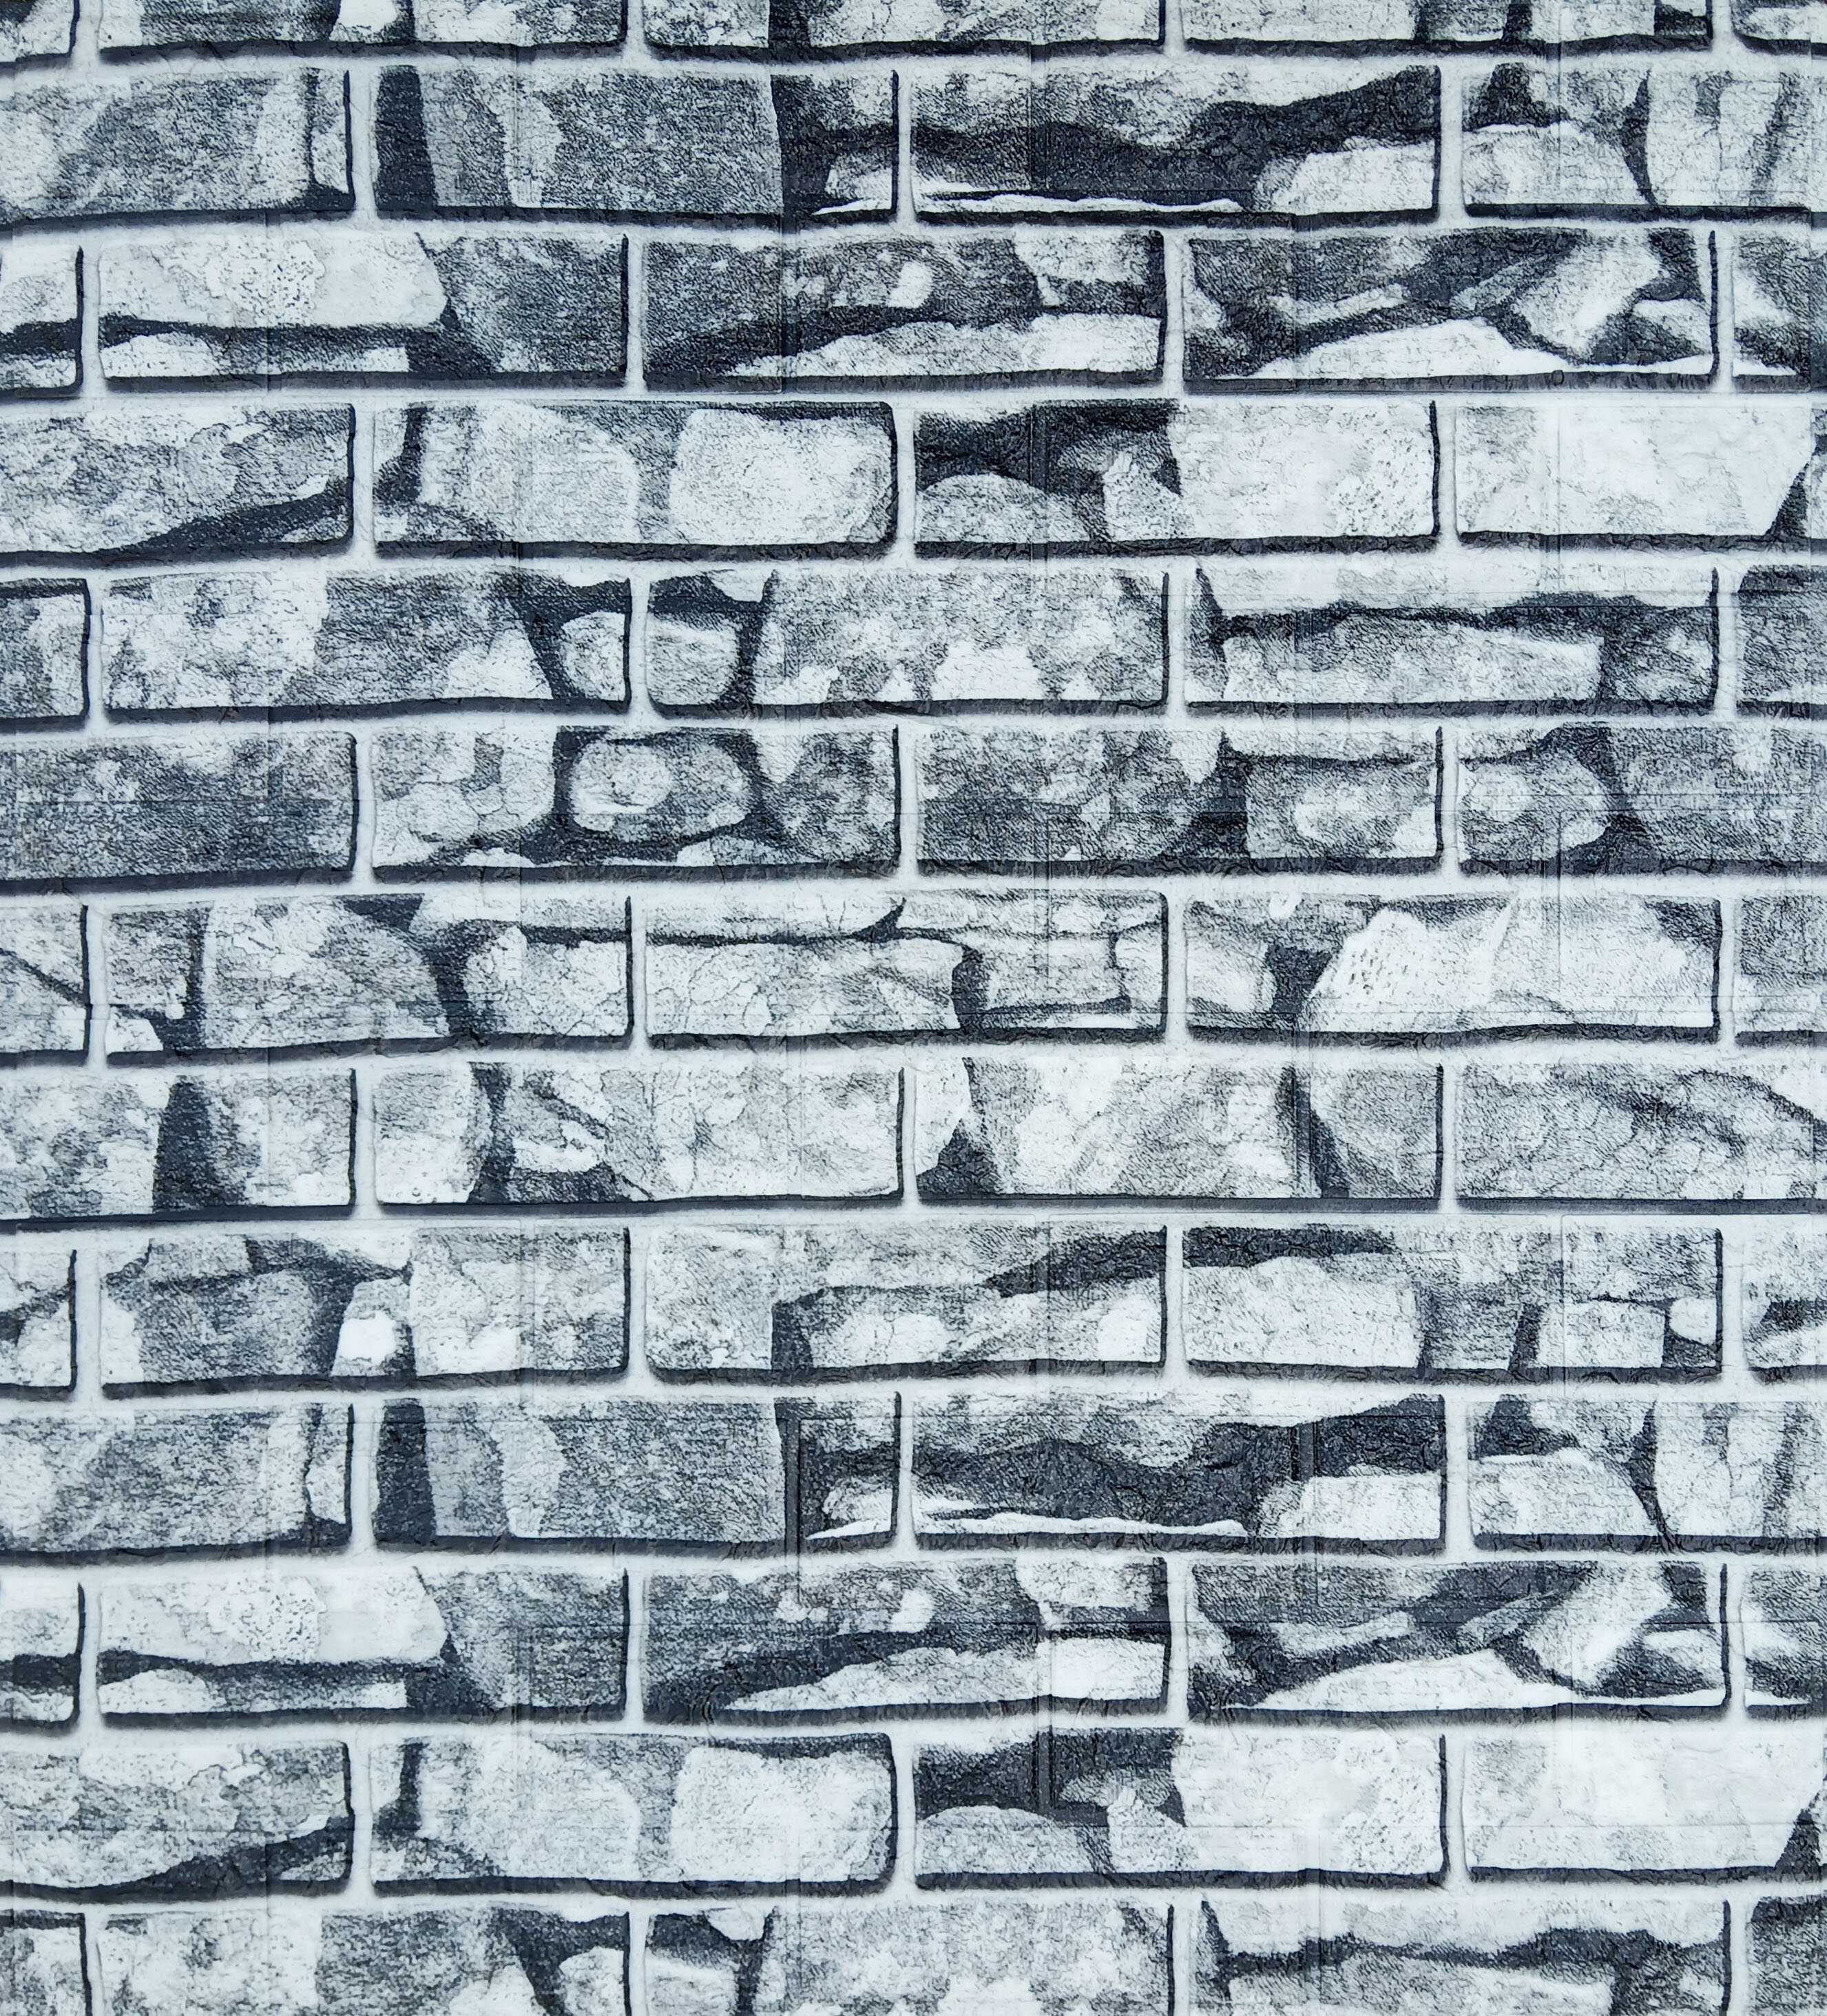 Dundee Deco White Grey Faux Stone 3d Wall Panel Peel And Stick Wall Sticker Self Adhesive Foam Wallpaper For Interior Design Wall Paneling Decor 2 3ft X 2 5ft 5 75 Sq Ft Each 5 Pack